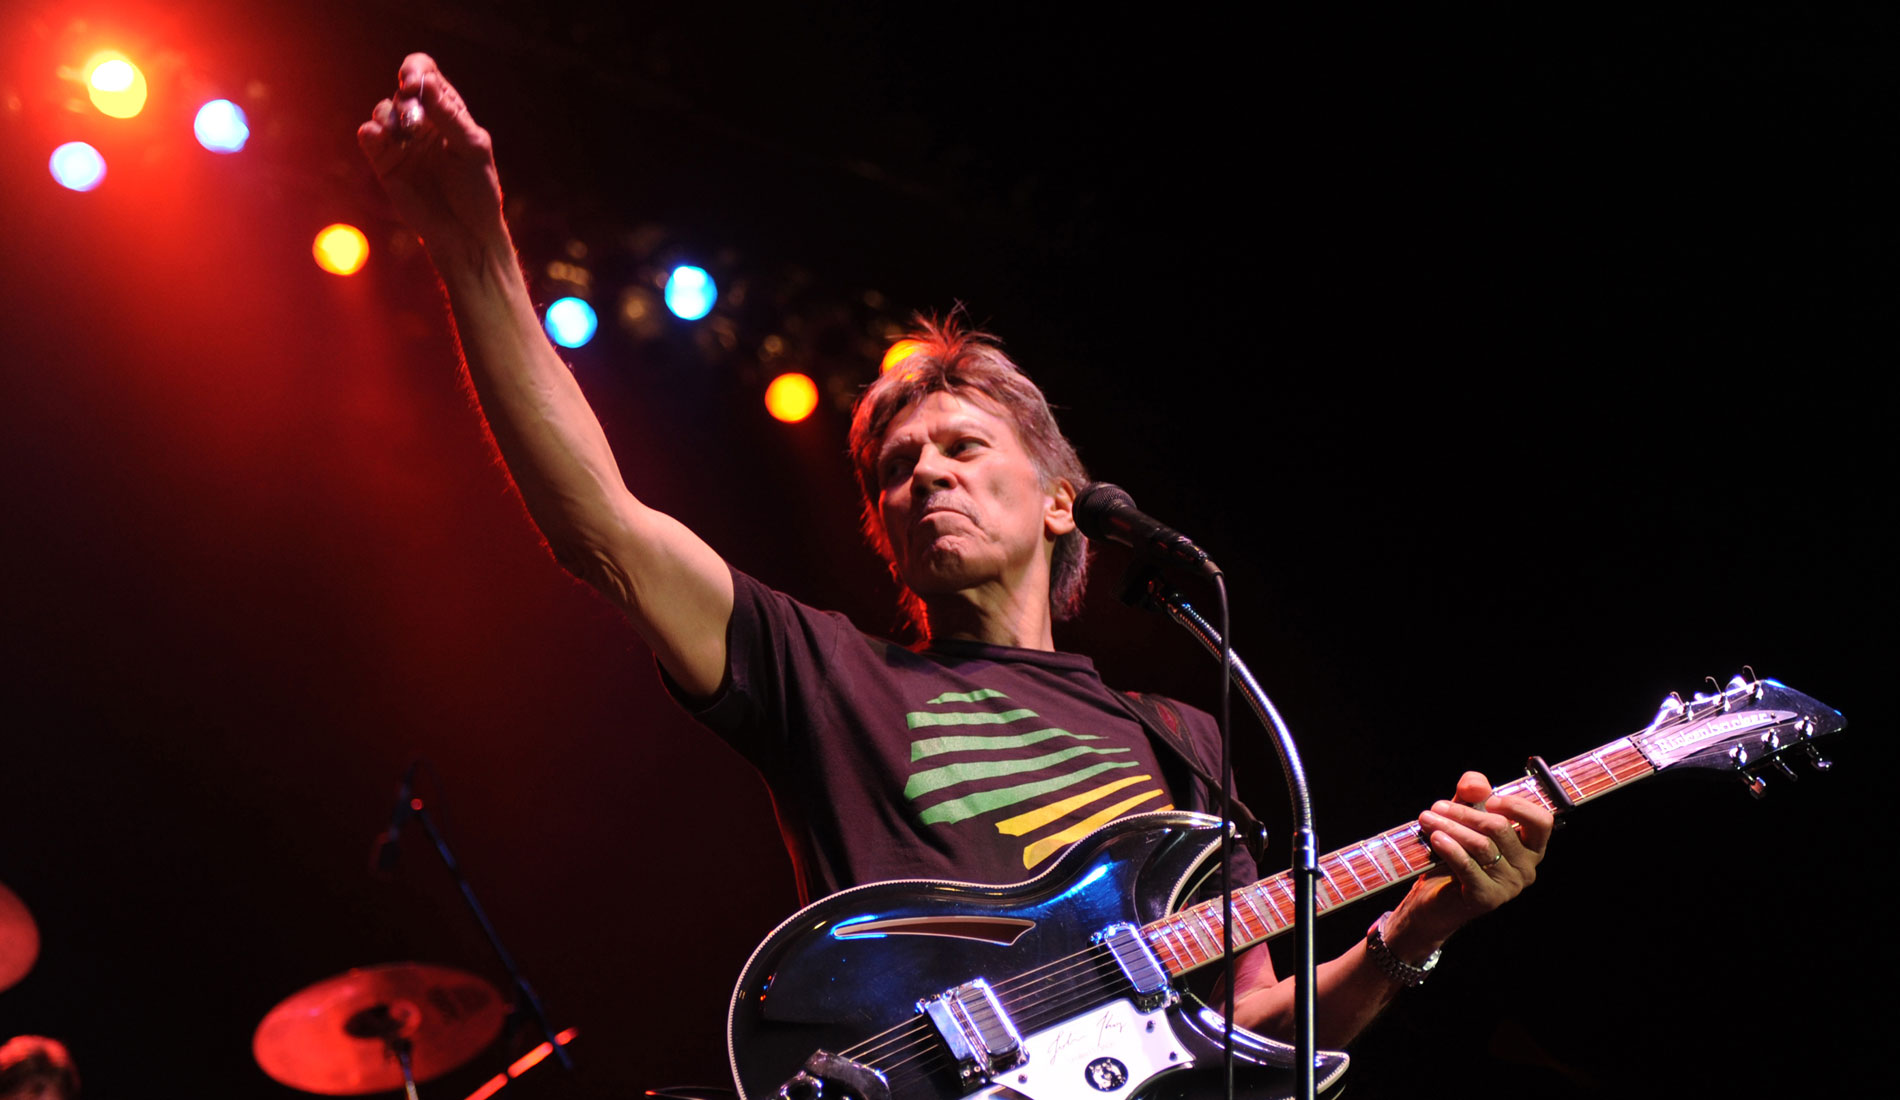 John Kay of Steppenwolf raises his hands to the fans as he performs at Hard Rock Live in the Seminole Hard Rock Hotel and Casino.